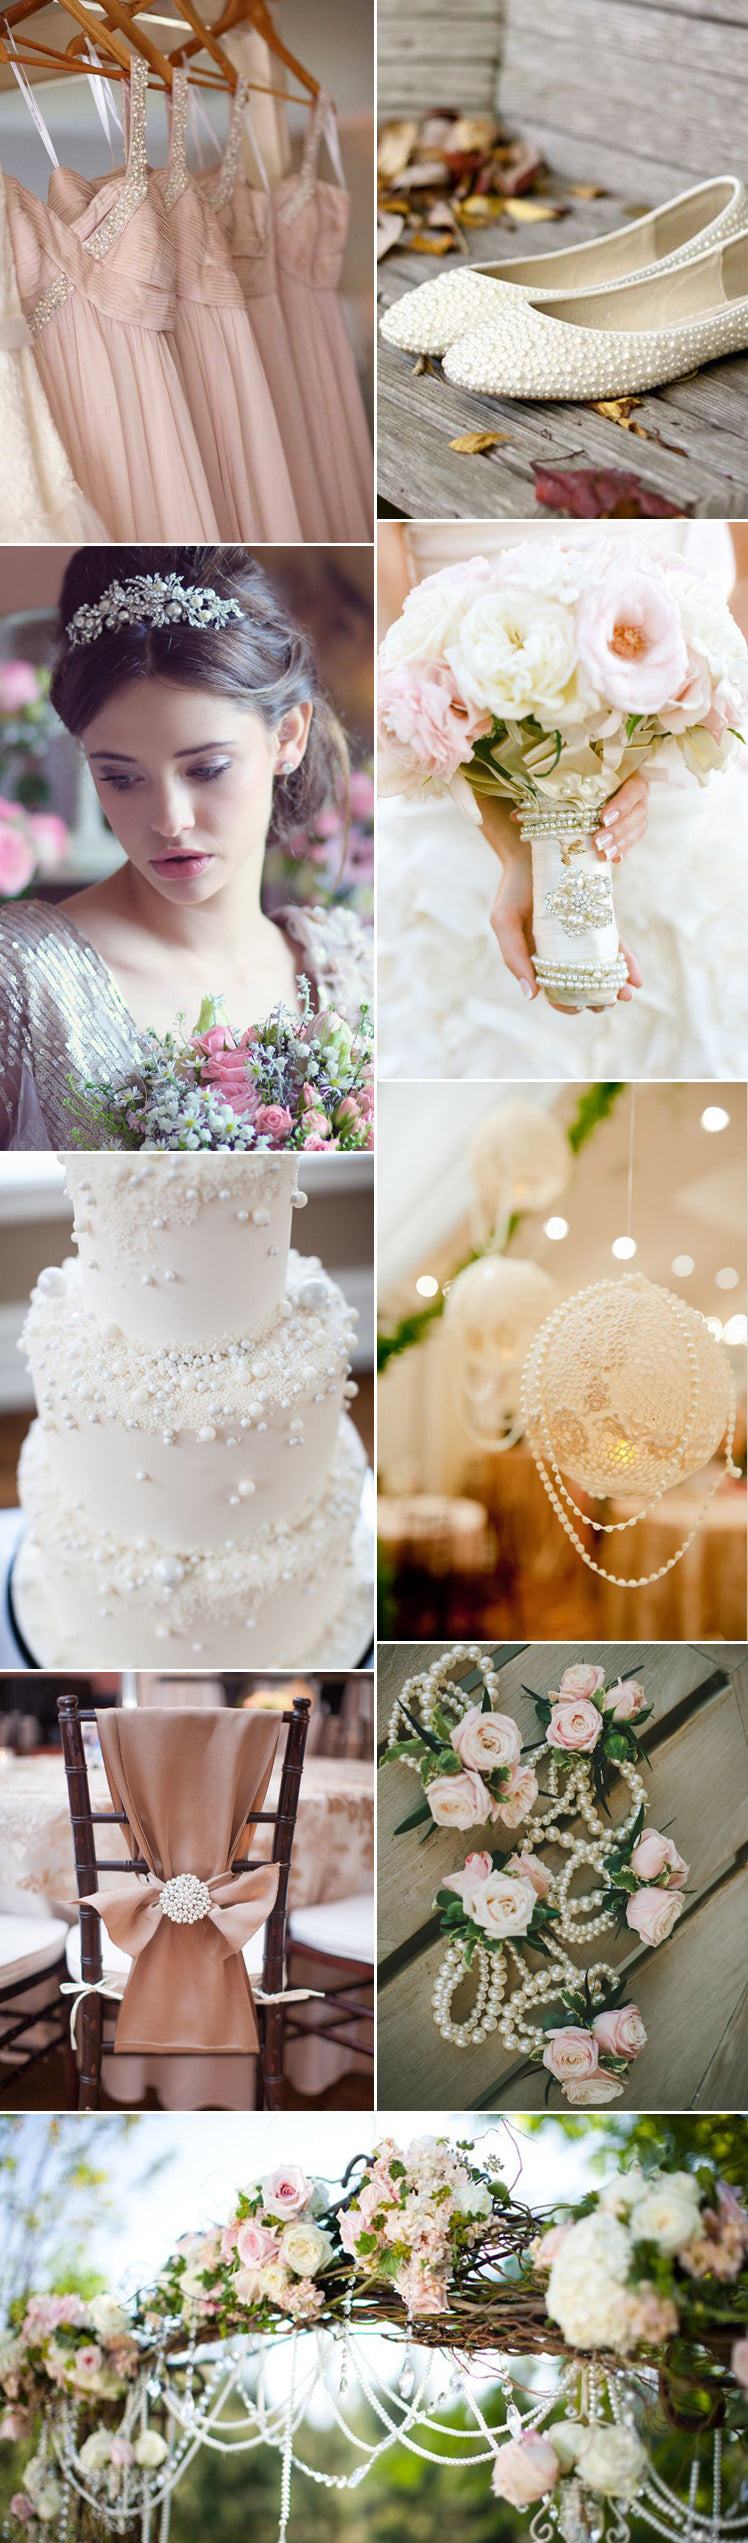 June's birthstone pearl wedding theme